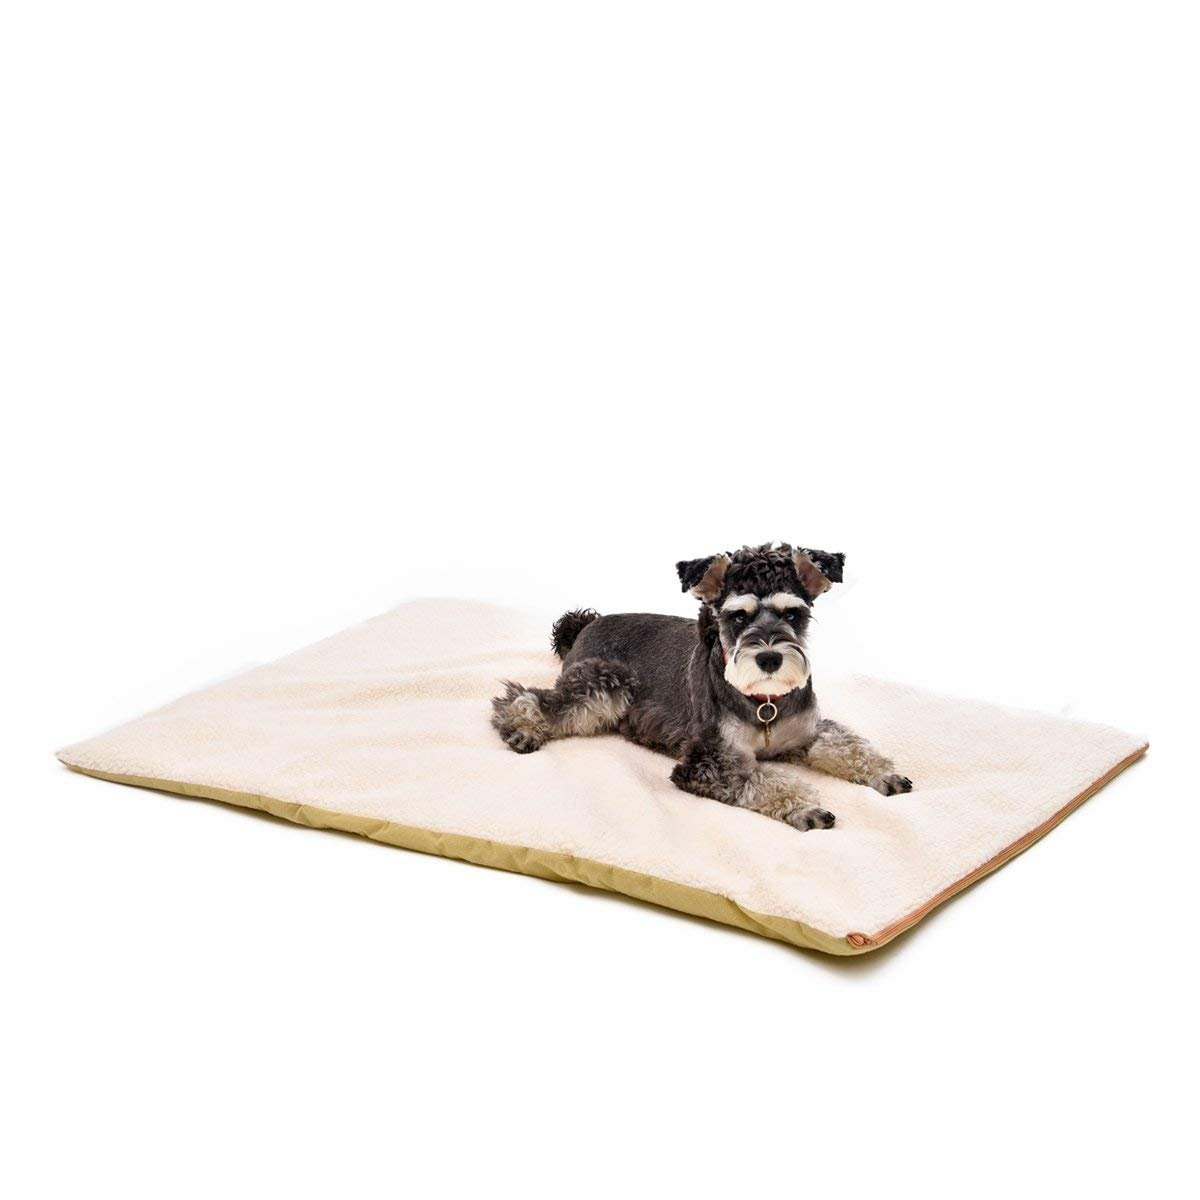 Beige 47.2  29.5 inch Beige 47.2  29.5 inch Speedy Pet Dog Bed Mats Reflective Thermal Winter Sleeping Warm Fleece Faux Fur Cushion Soft Durable Dog Cat Bed Pad with Anti-Slip Removable Washable Cover for Small Medium Large Pet Beige XL